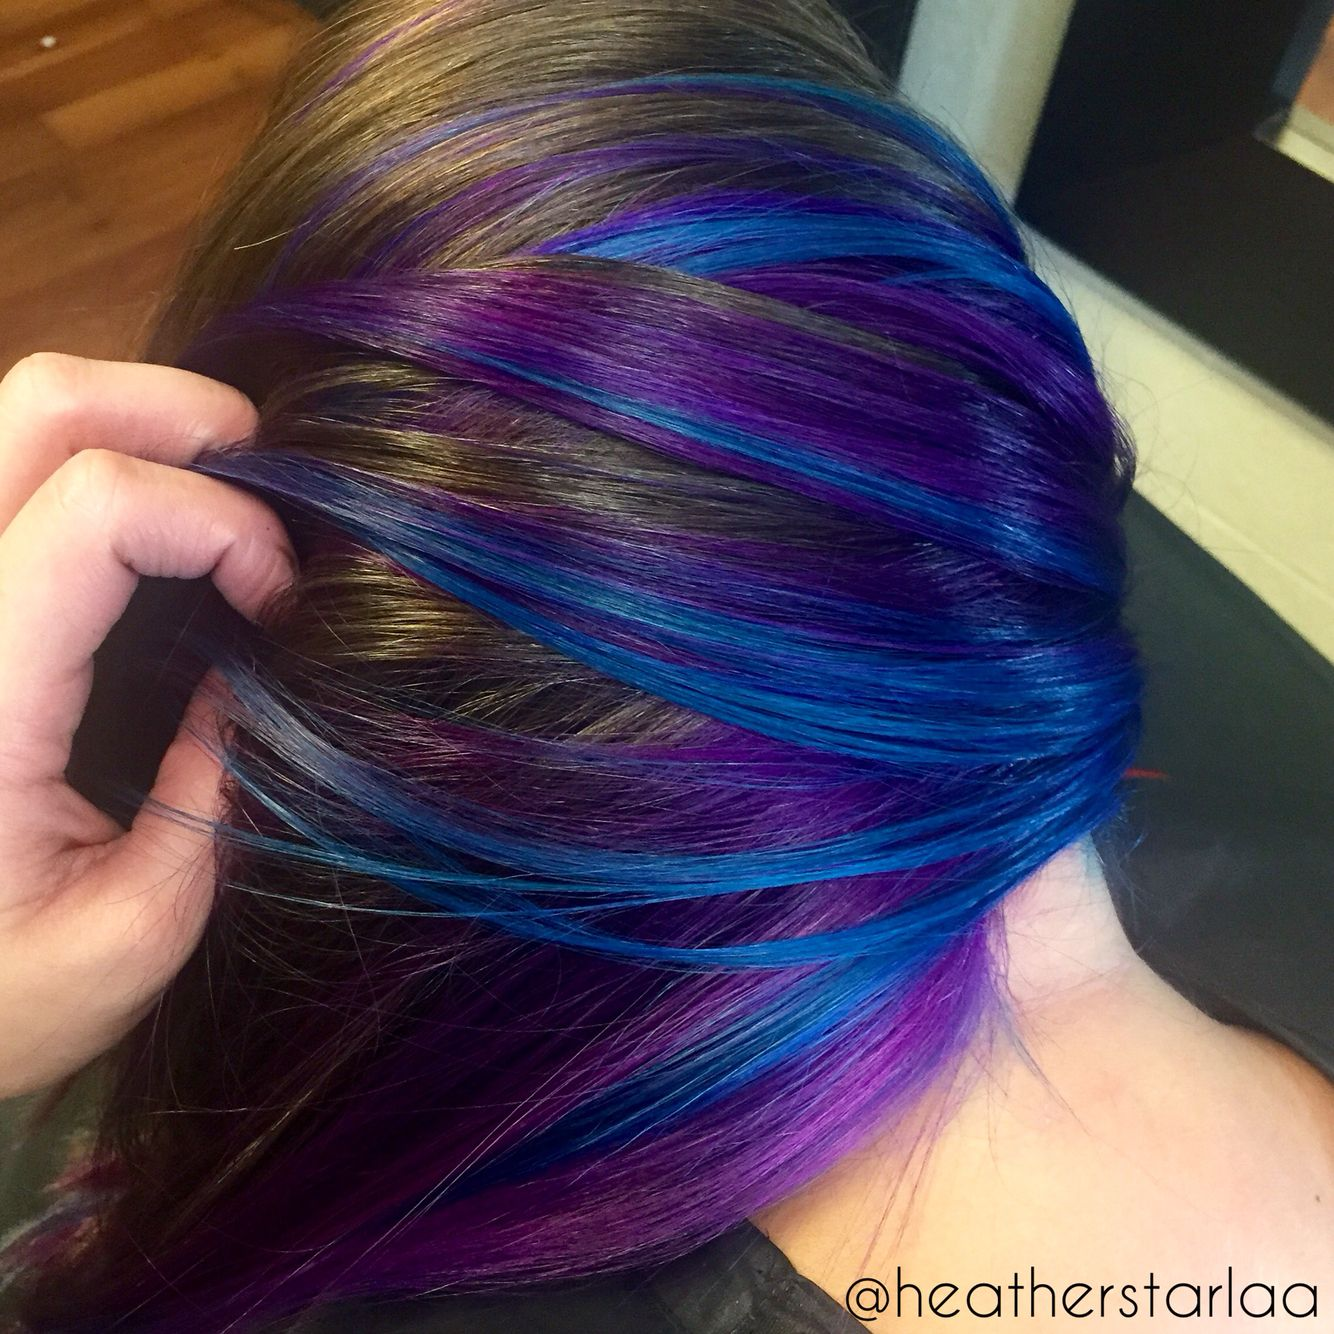 Violet Underneath With Blue Highlights Purple Hair Violet Hair Blue Hair Hair Styles Underlights Hair Hair Collection